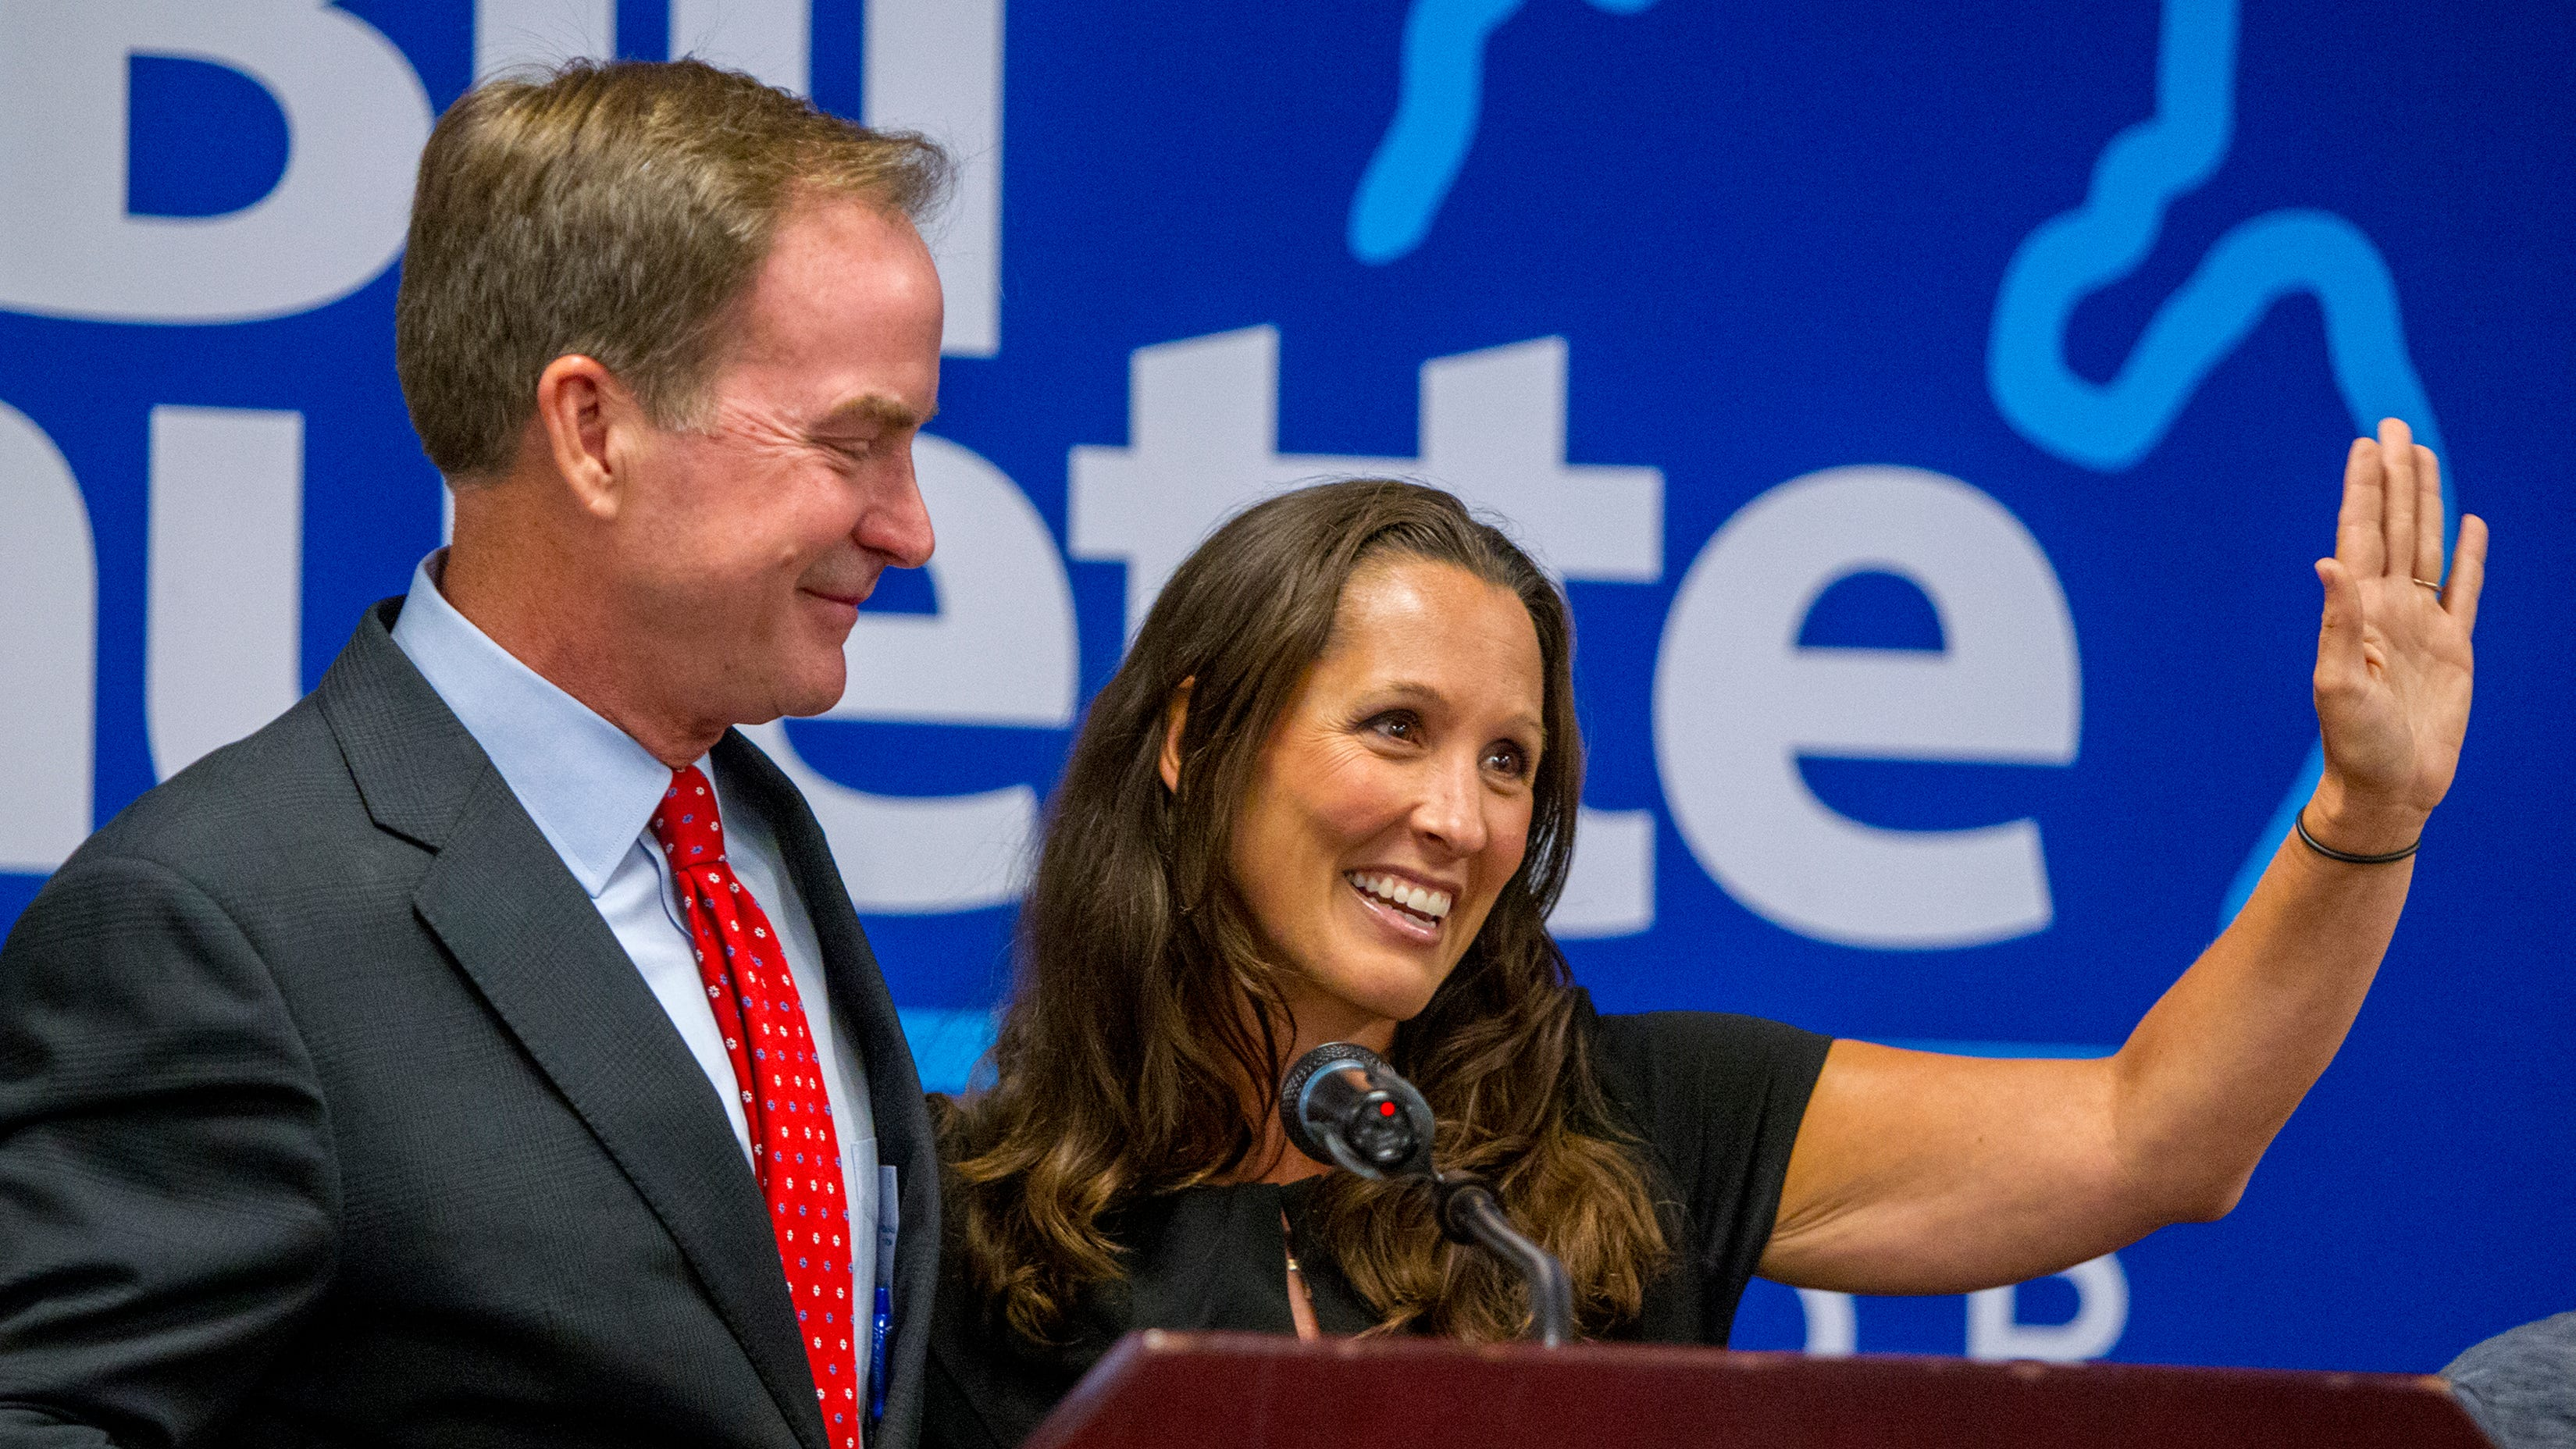 Meet Republican Bill Schuette's running mate, Lisa Posthumus Lyons